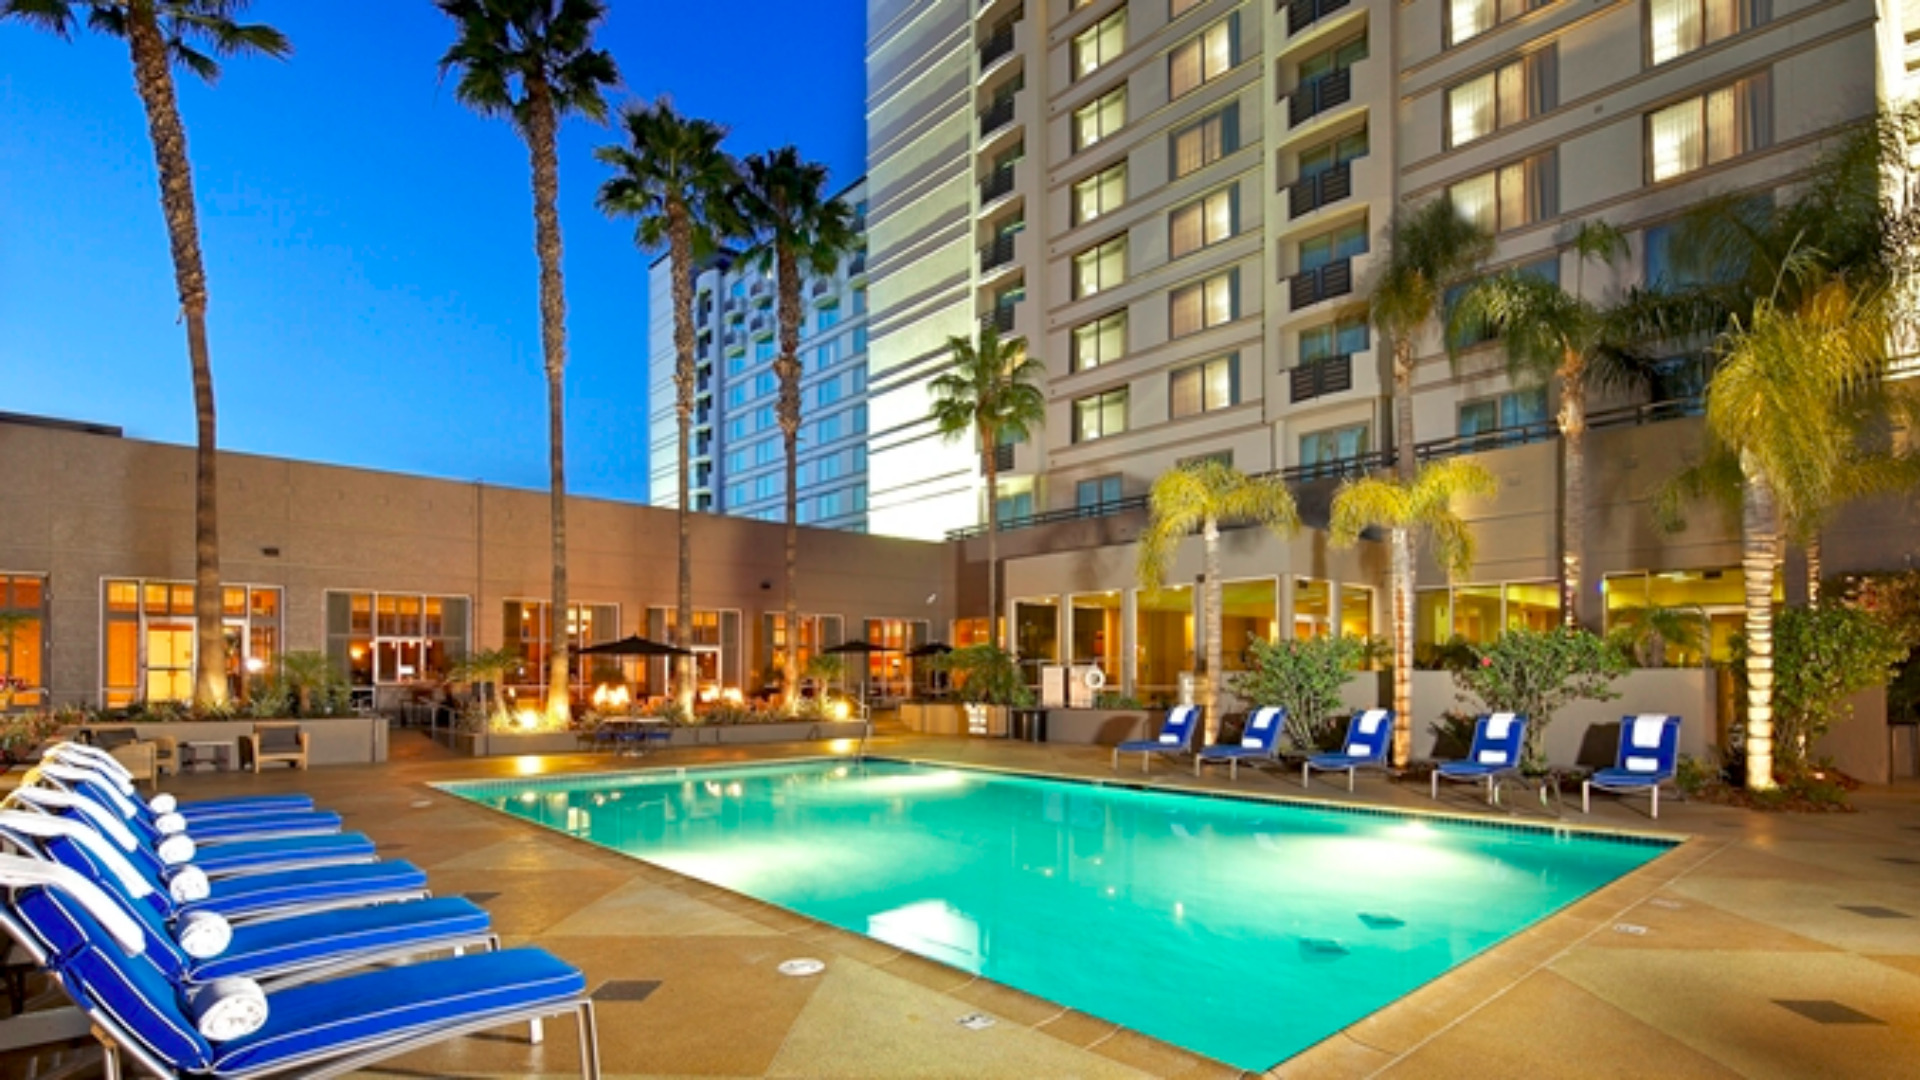 San Diego Welcomes The First Hilton Worldwide Hotel